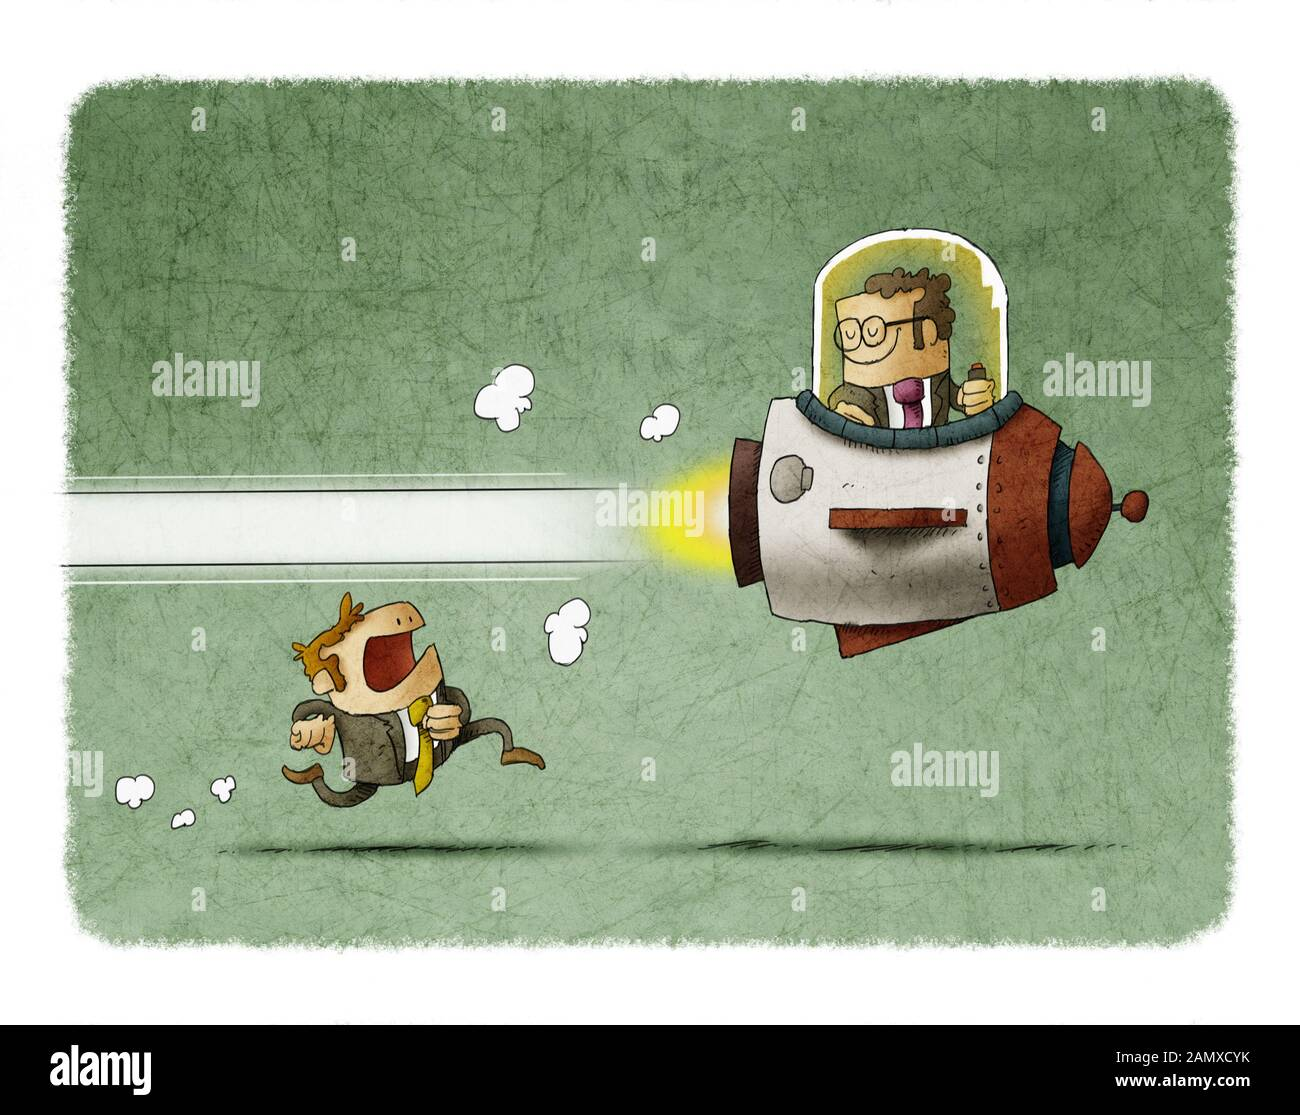 Motivation Cartoon High Resolution Stock Photography And Images Alamy